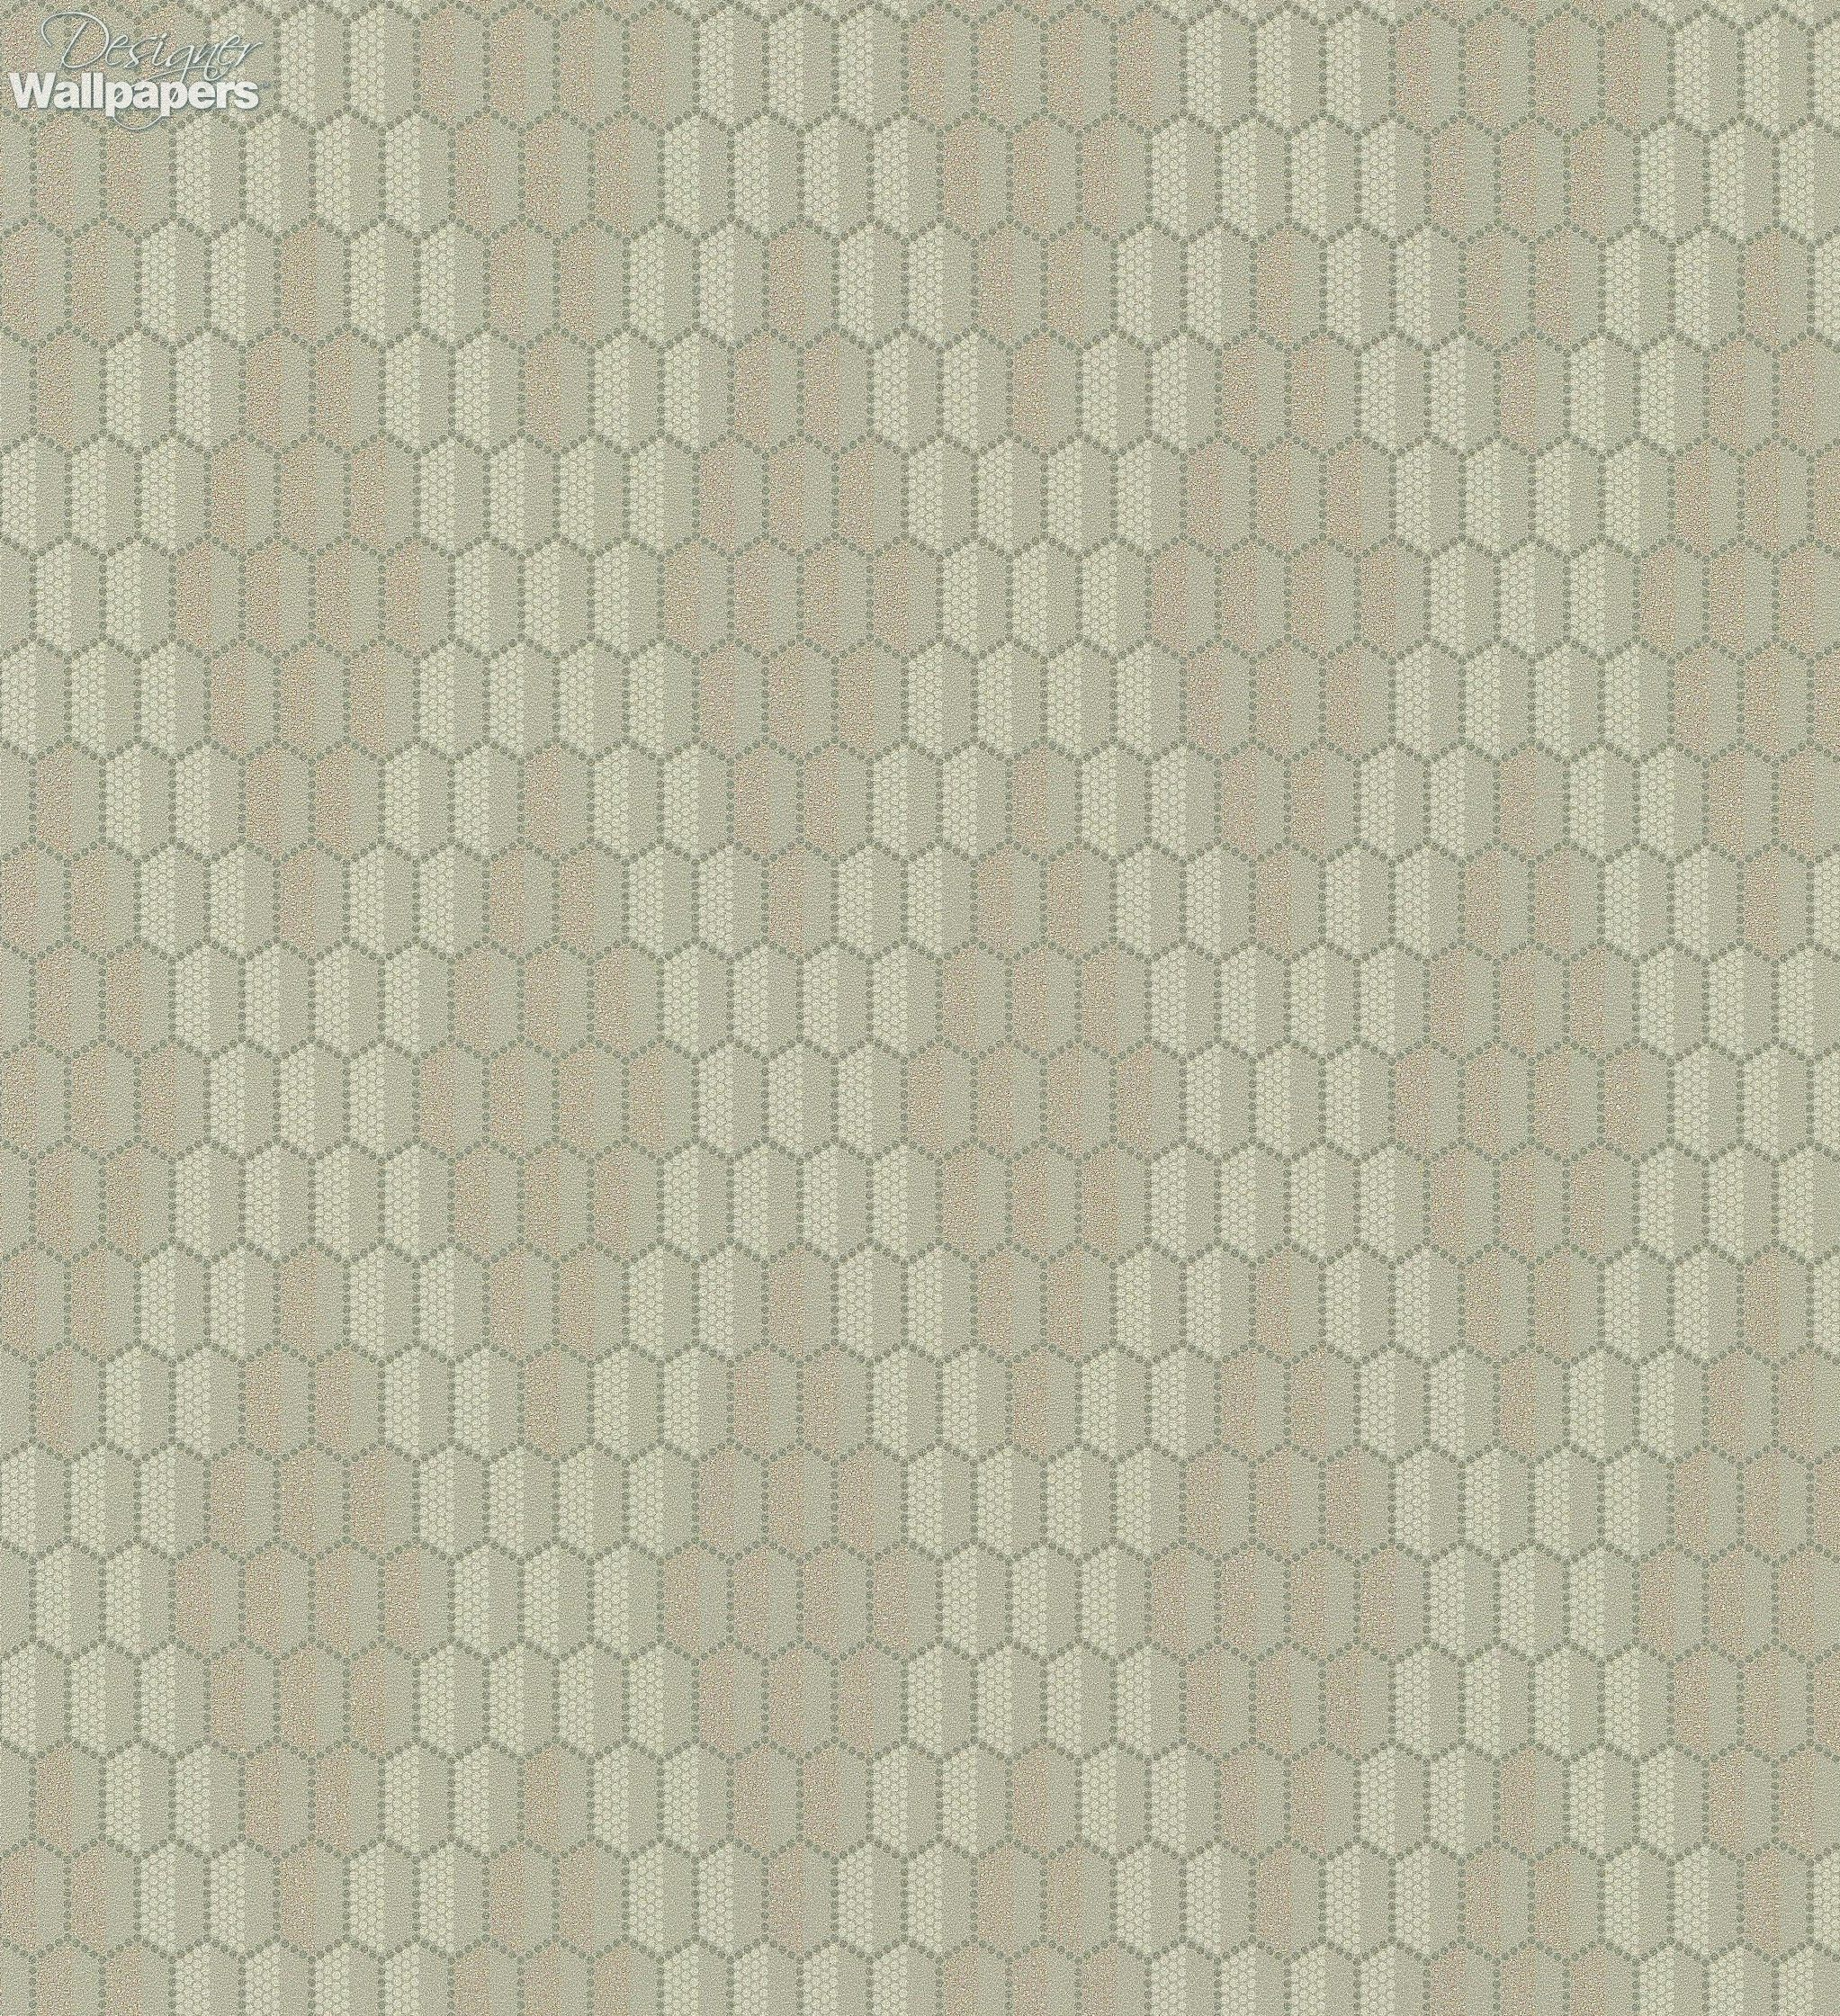 This Stunning Contemporary Wallpaper Features A Stylised Honeycomb Pattern Thats Composed Of Many Tiny Dots